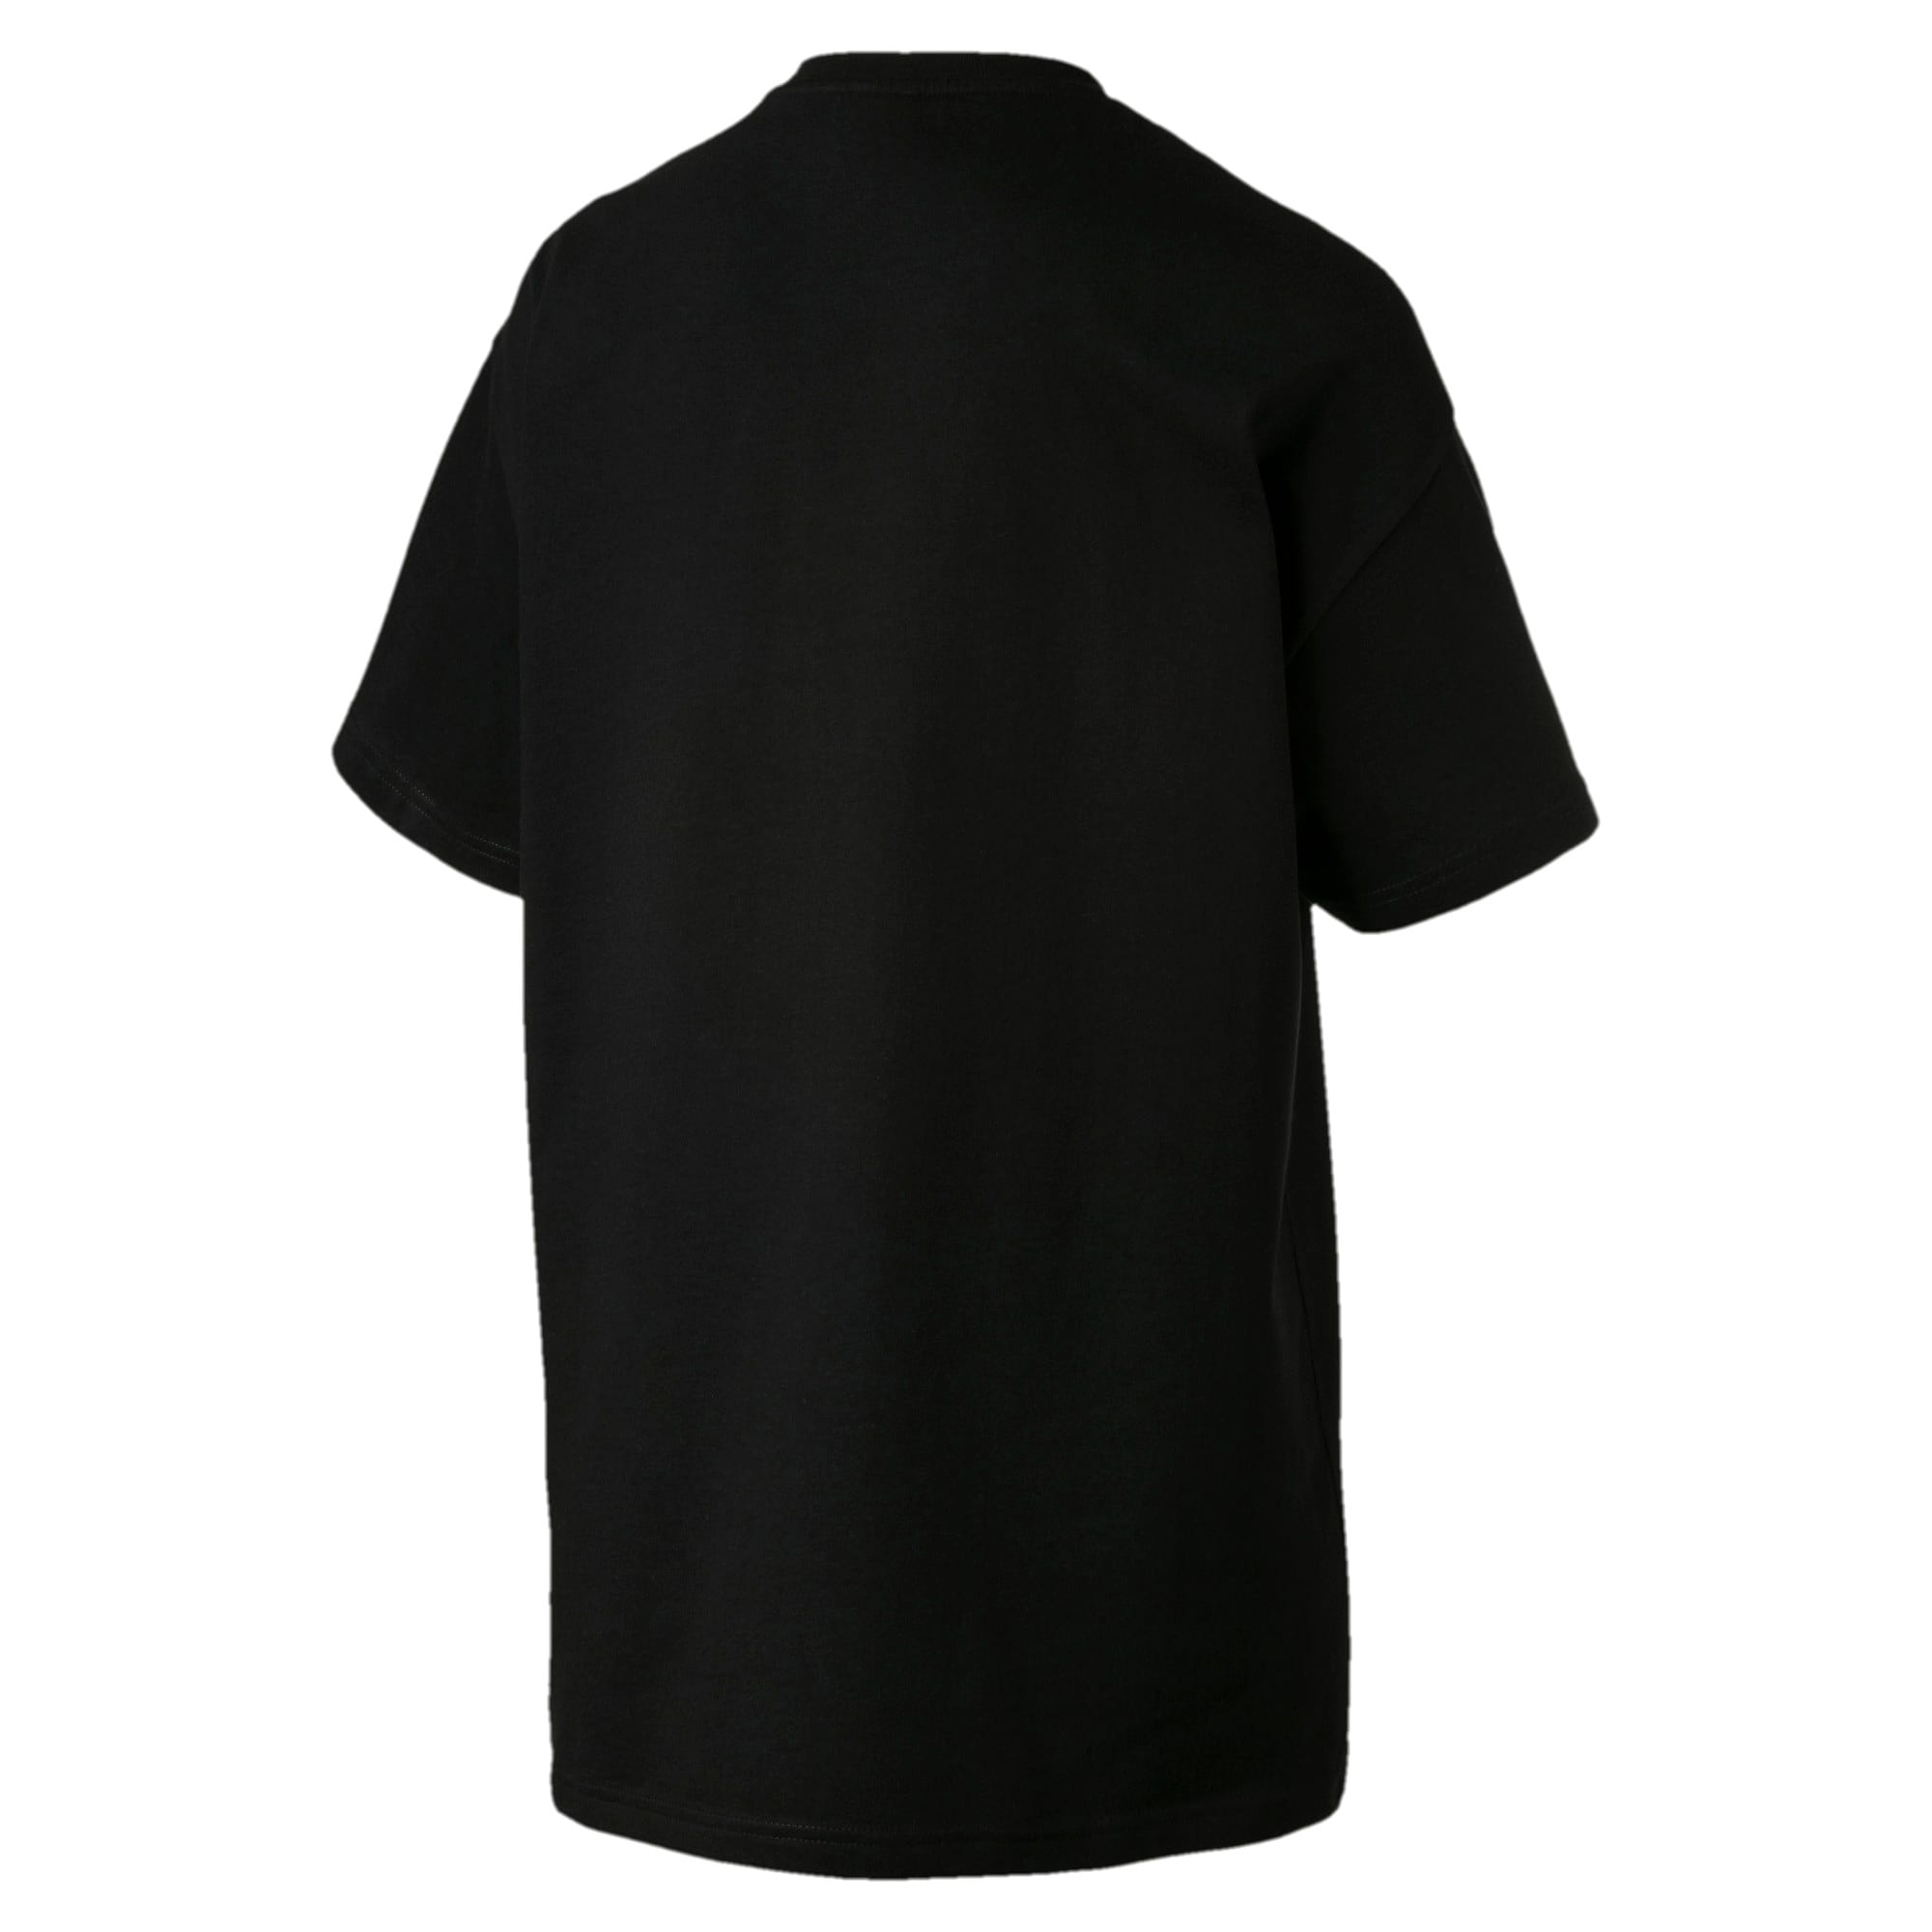 Graphics Elongated TB Tee, Cotton Black, large